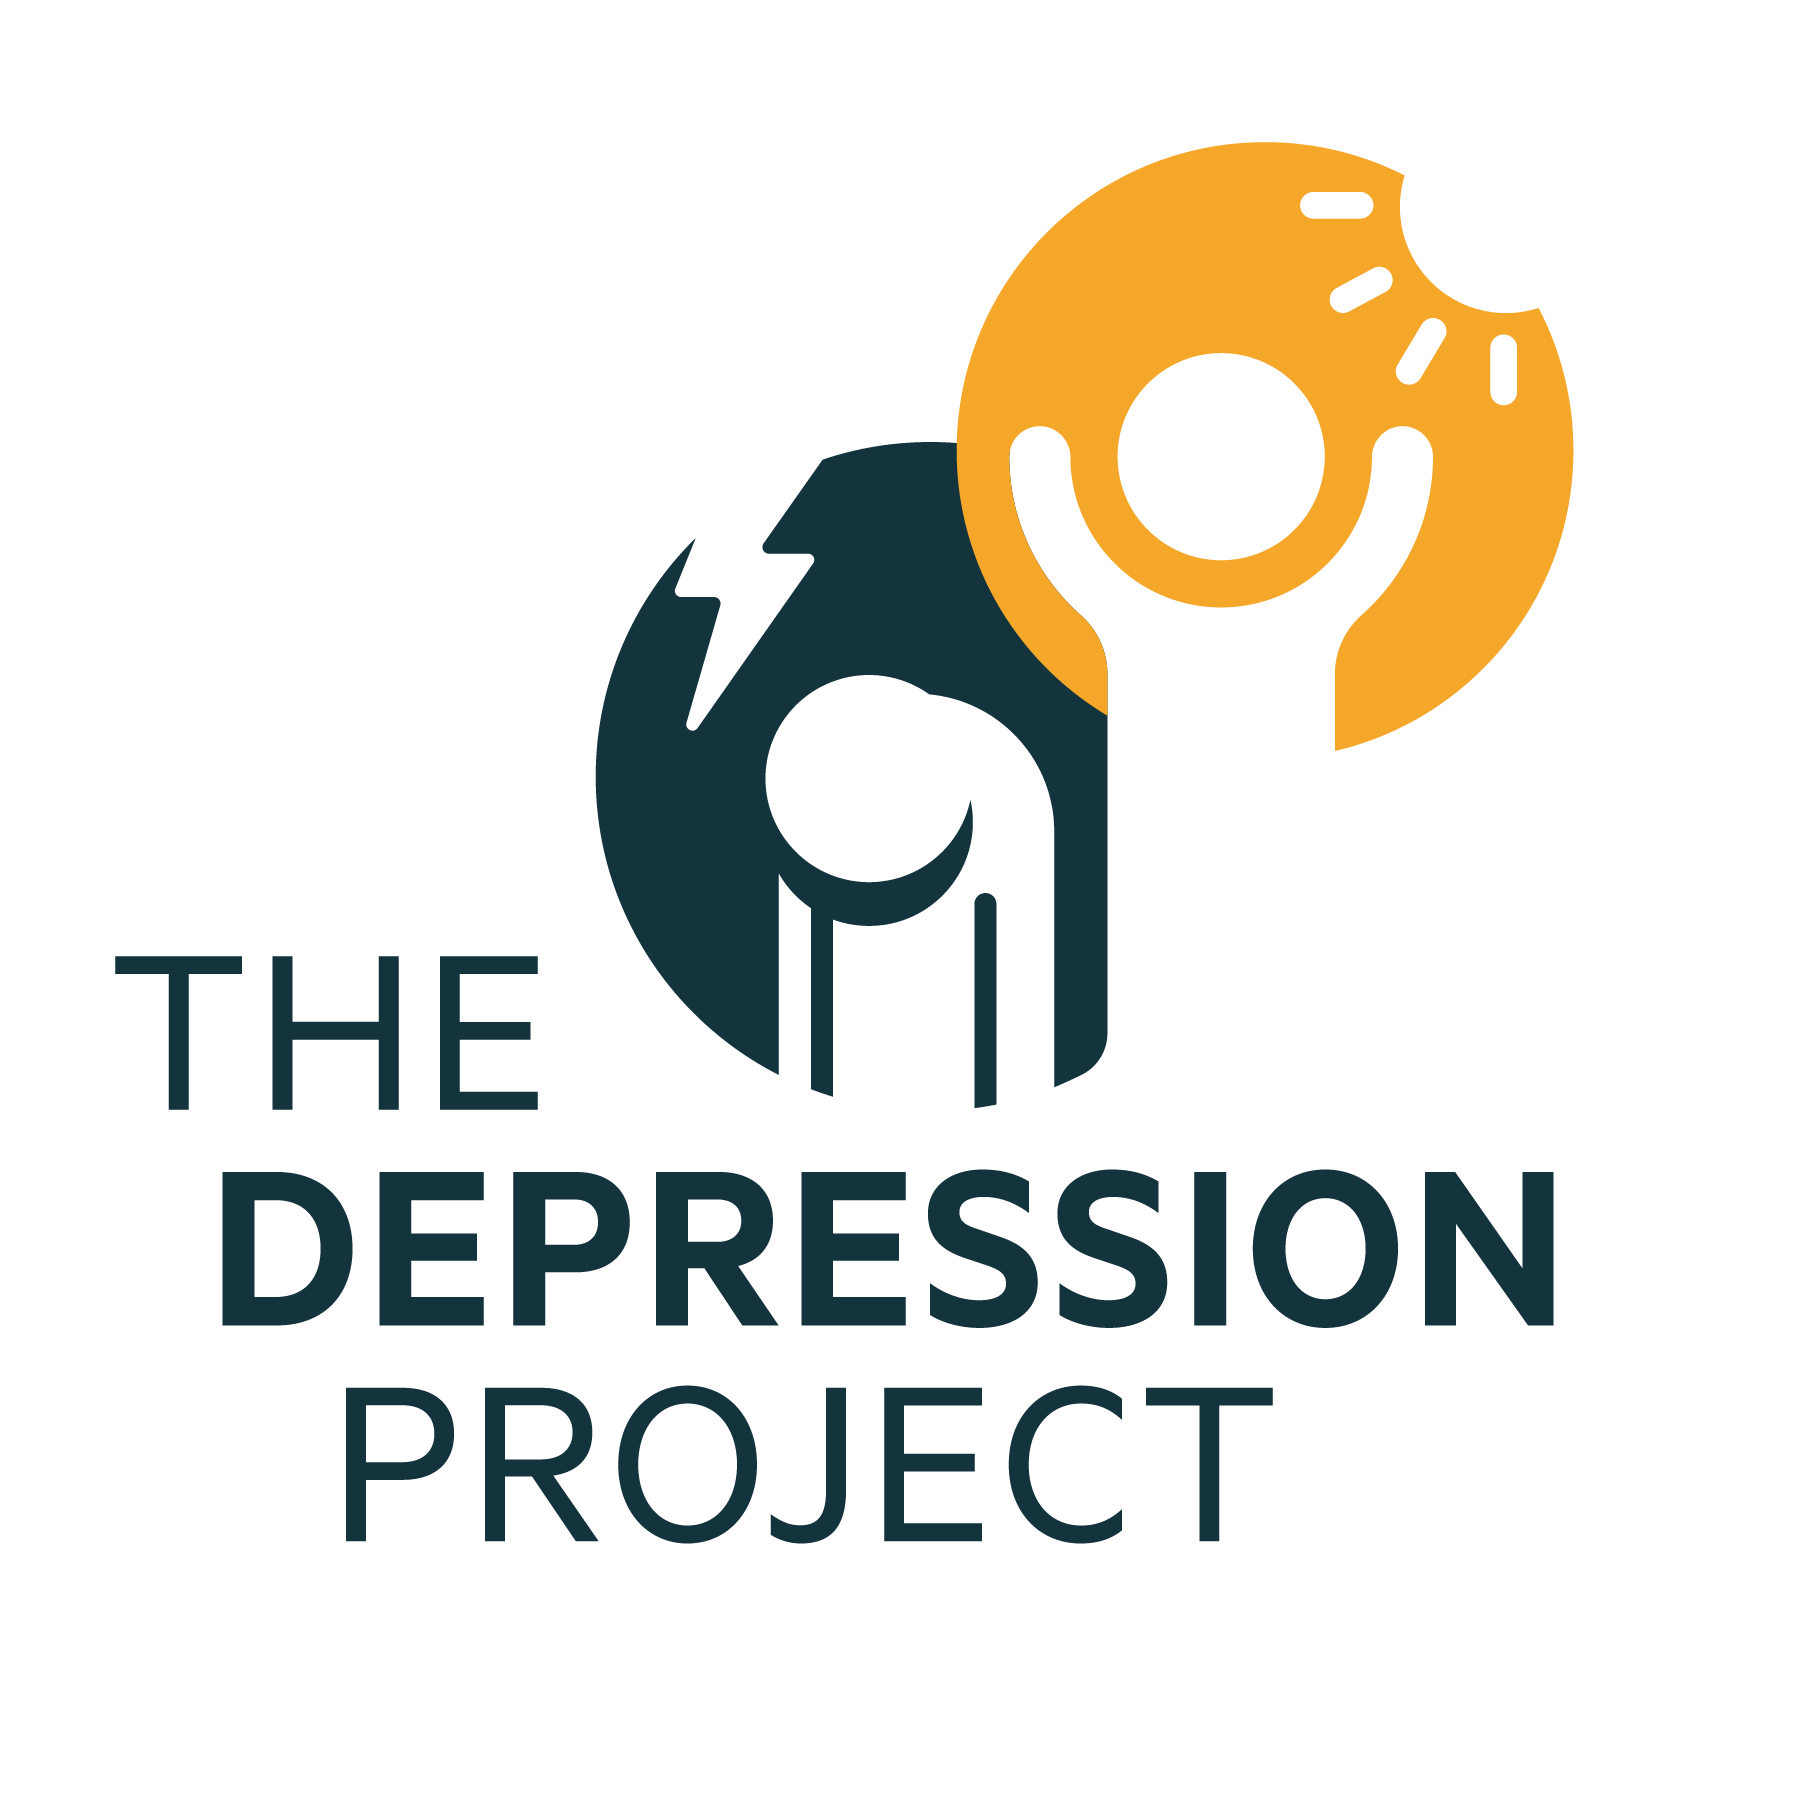 The Depression Project